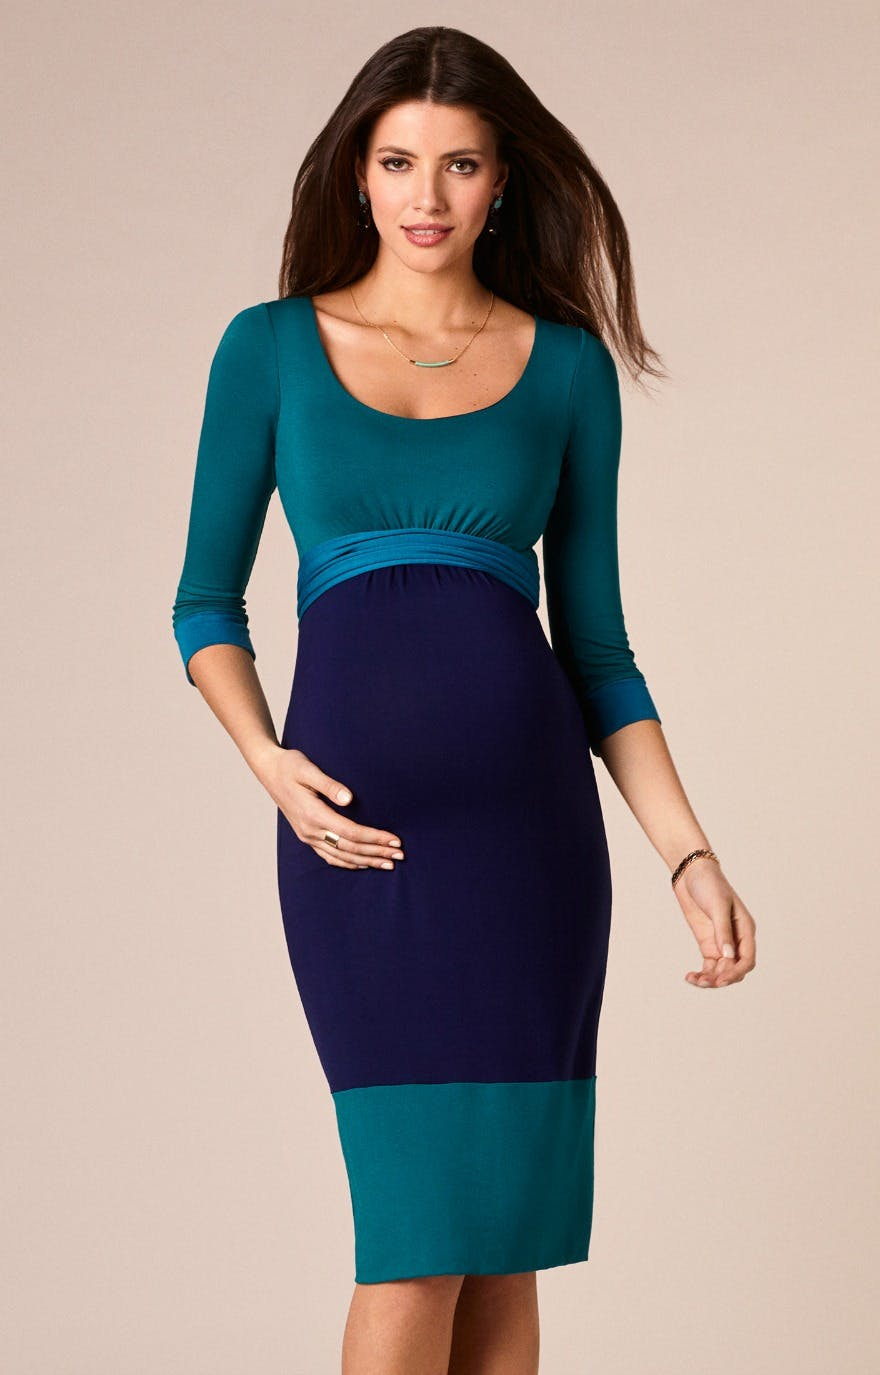 Blue colour block maternity dress by Tiffany Rose | Confetti.co.uk